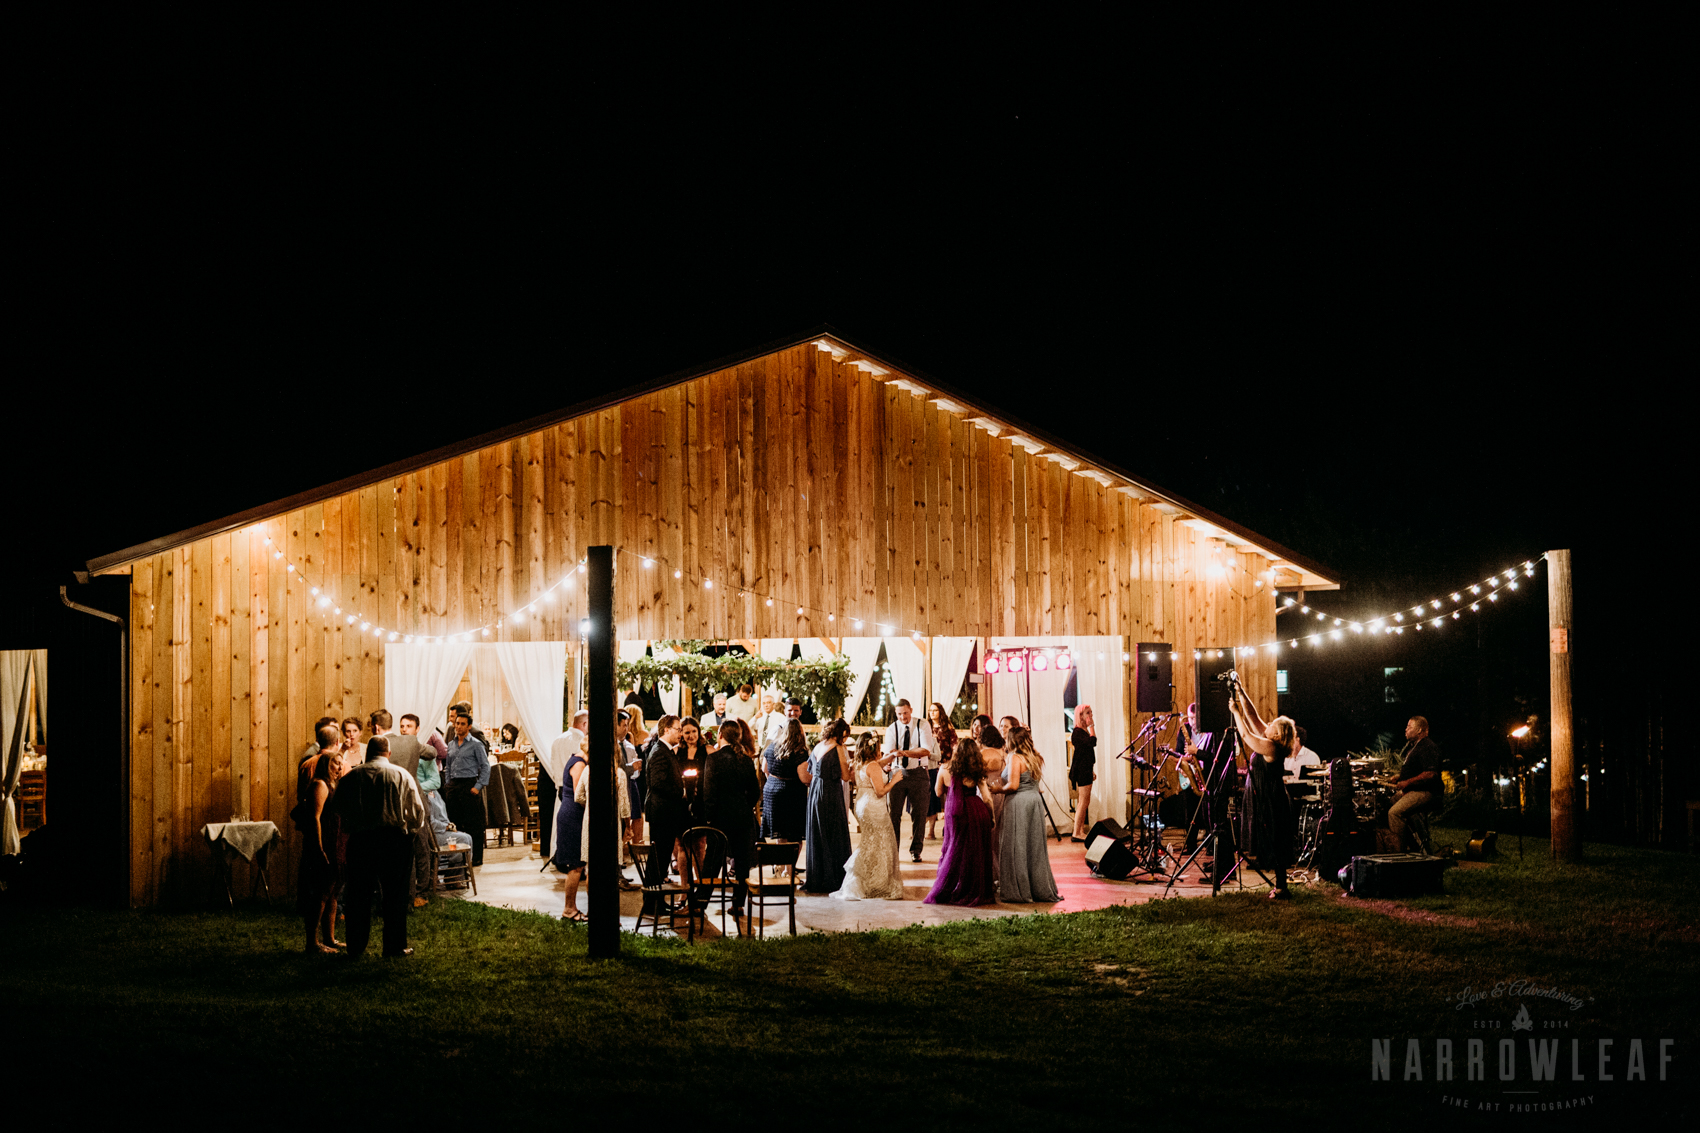 live-band-dancing-outdoor-wedding-reception-at-burlap-and-bells-wi-4.jpg